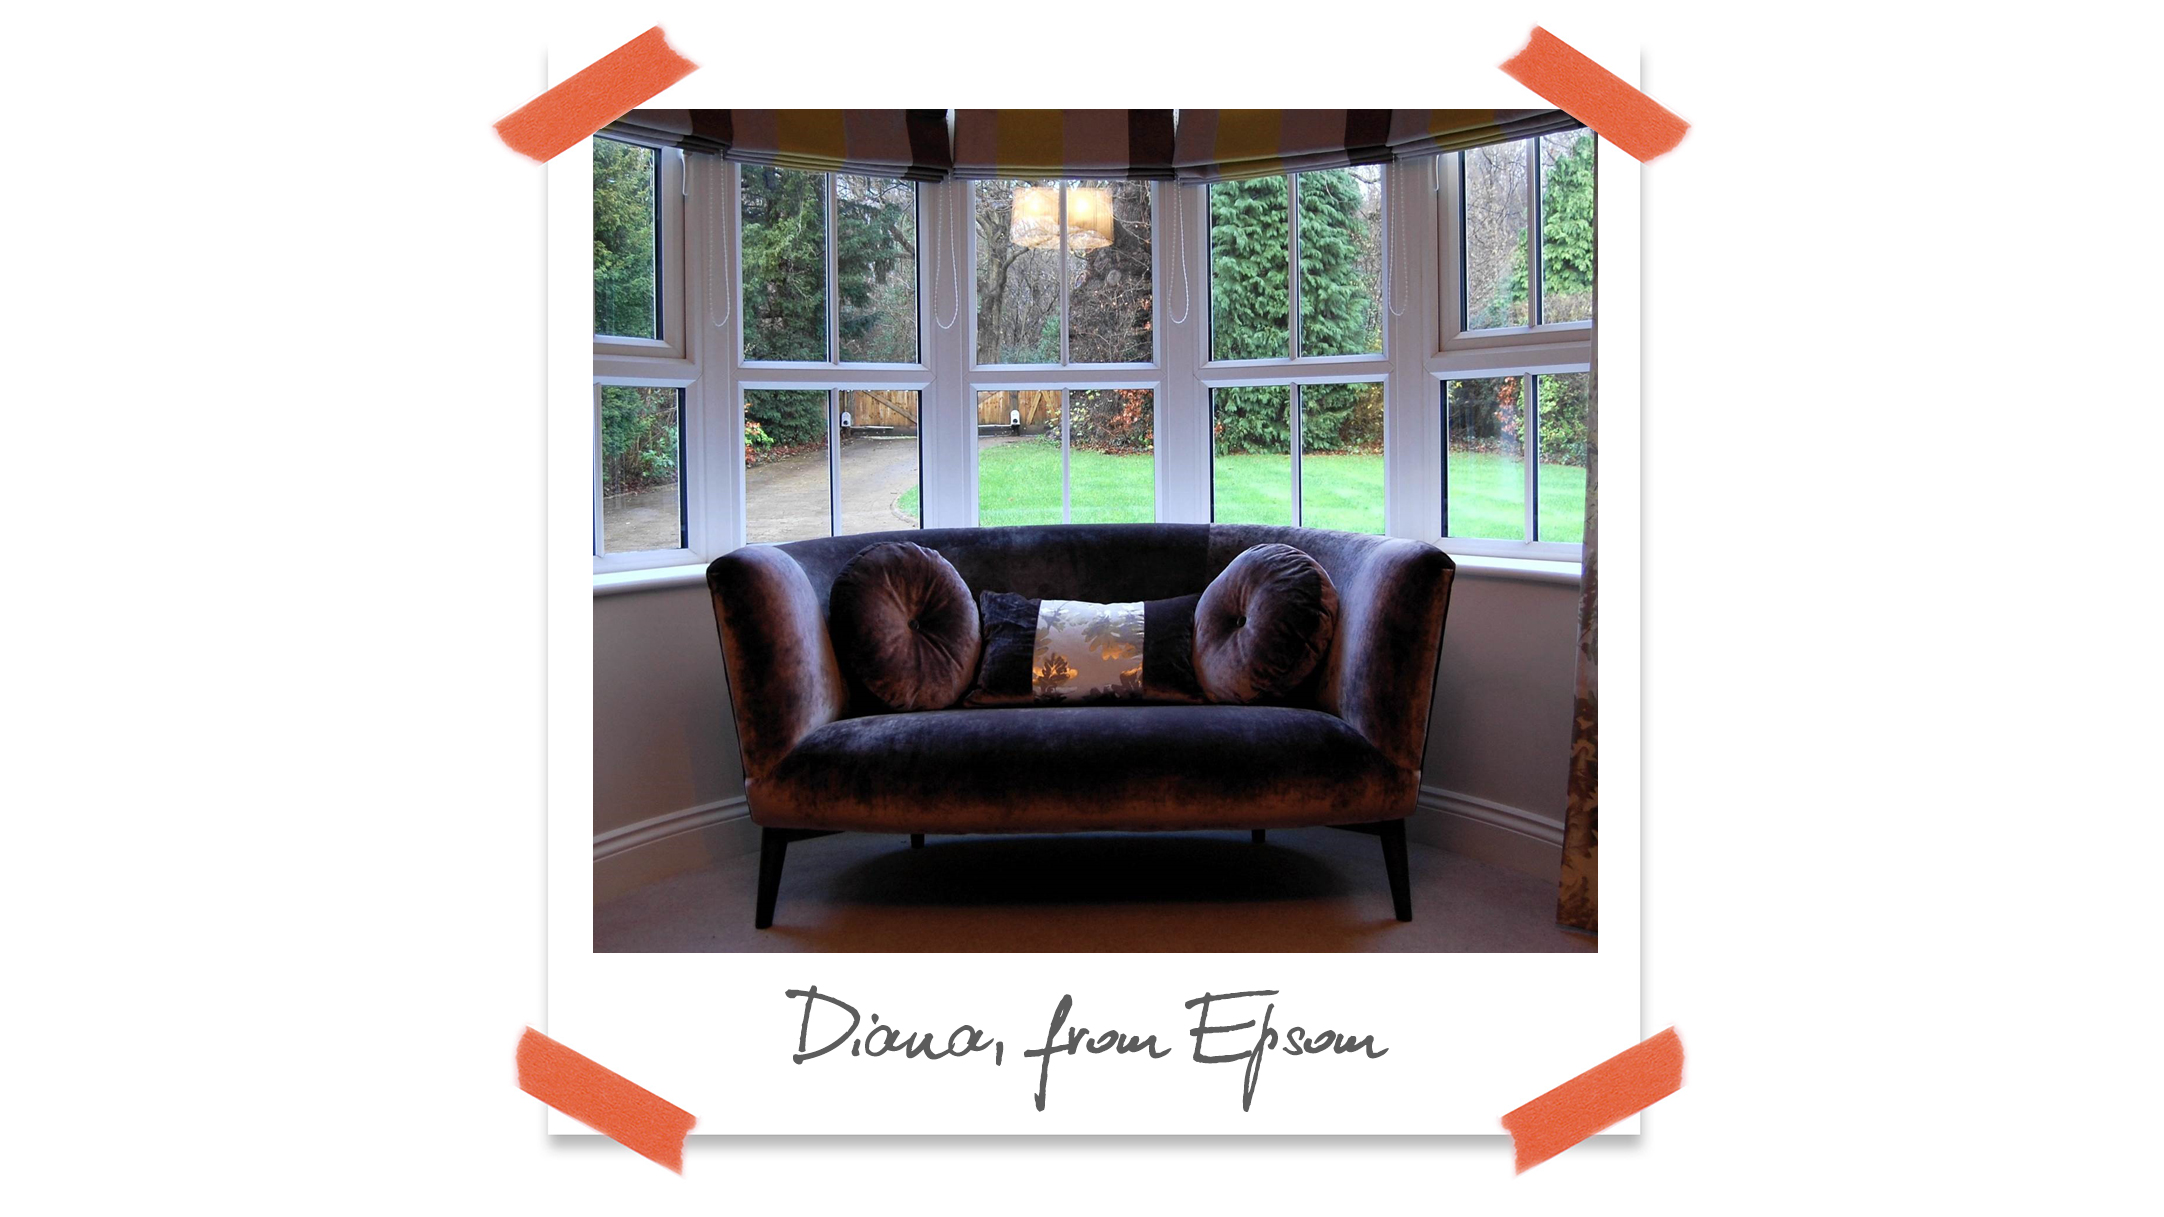 Diana from Epsom Customer Review